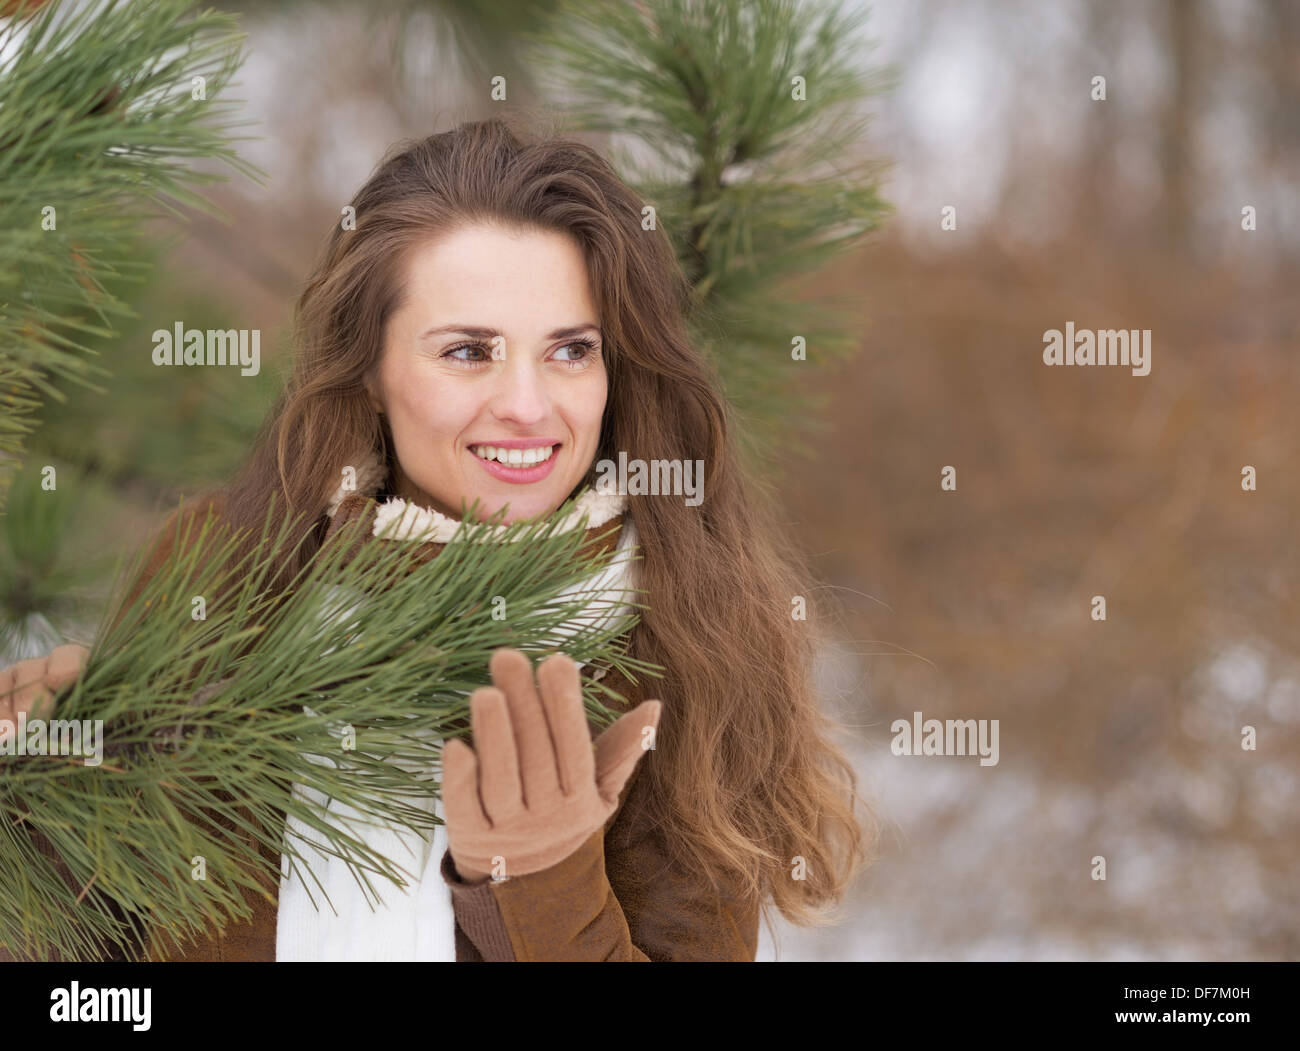 woman with fir tree stock photos woman with fir tree stock images